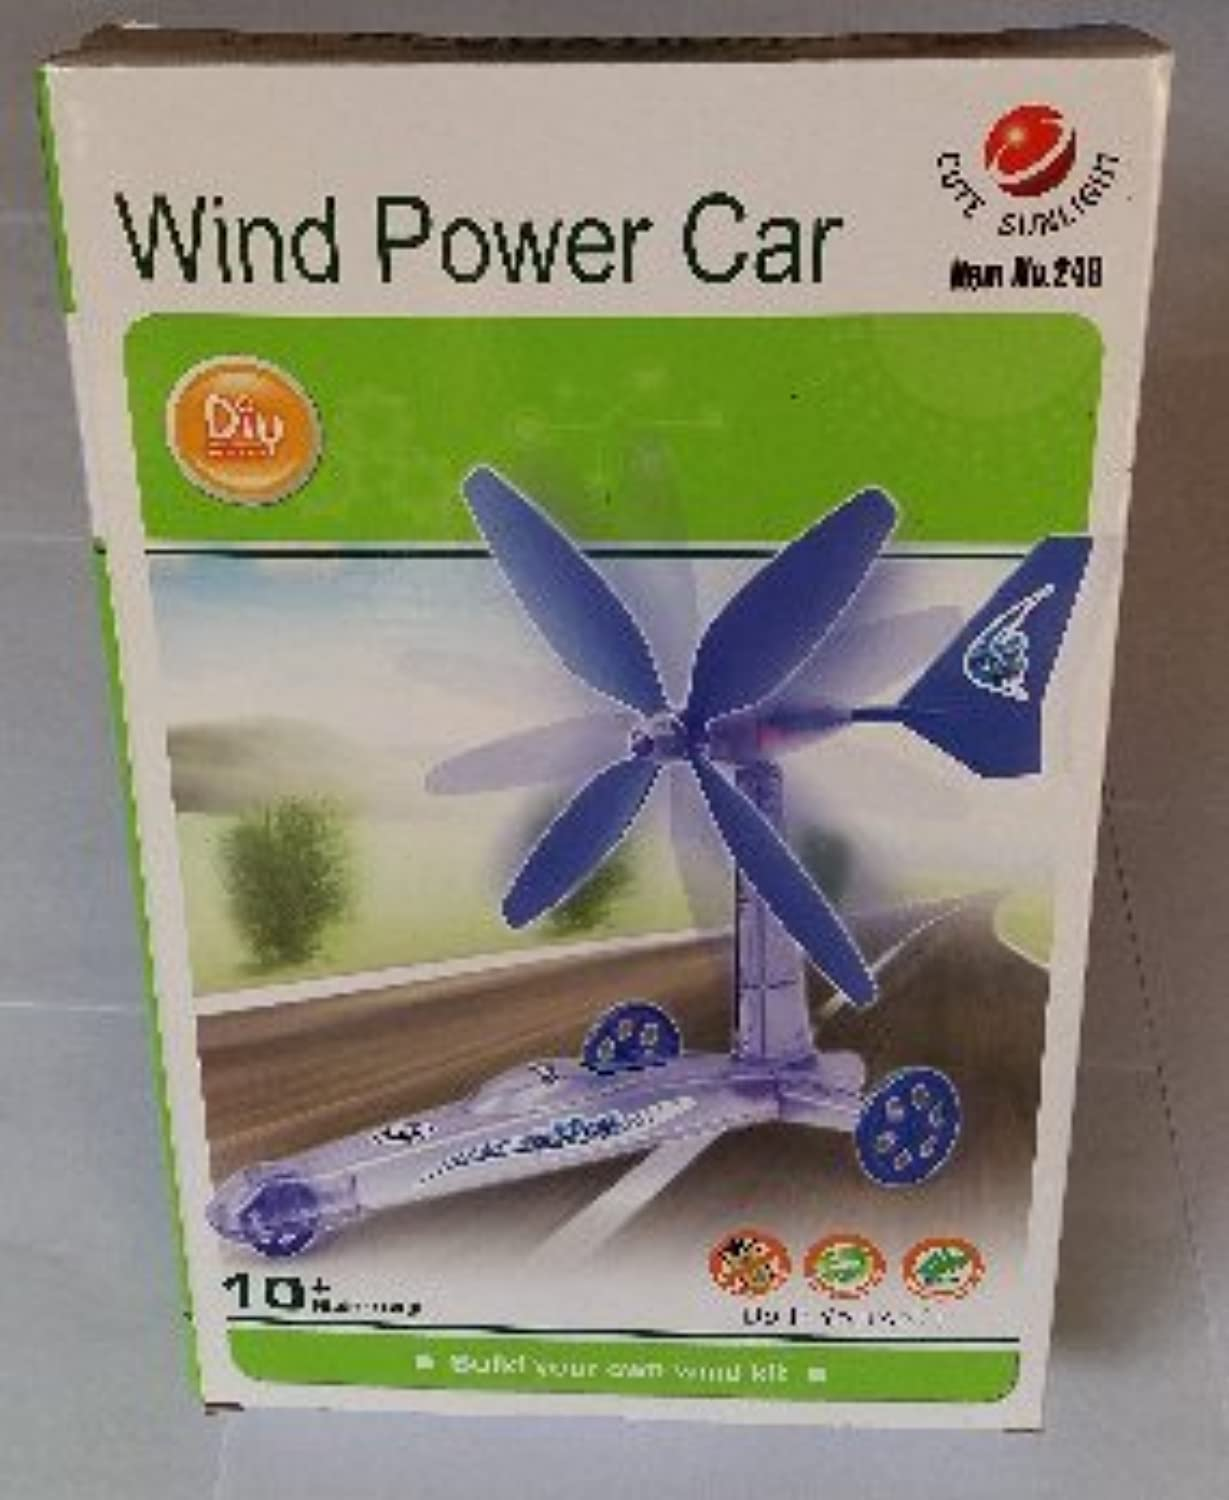 Kid教育toys-wind電源車、風力車キット/キット車、風Car Toys風電源キット